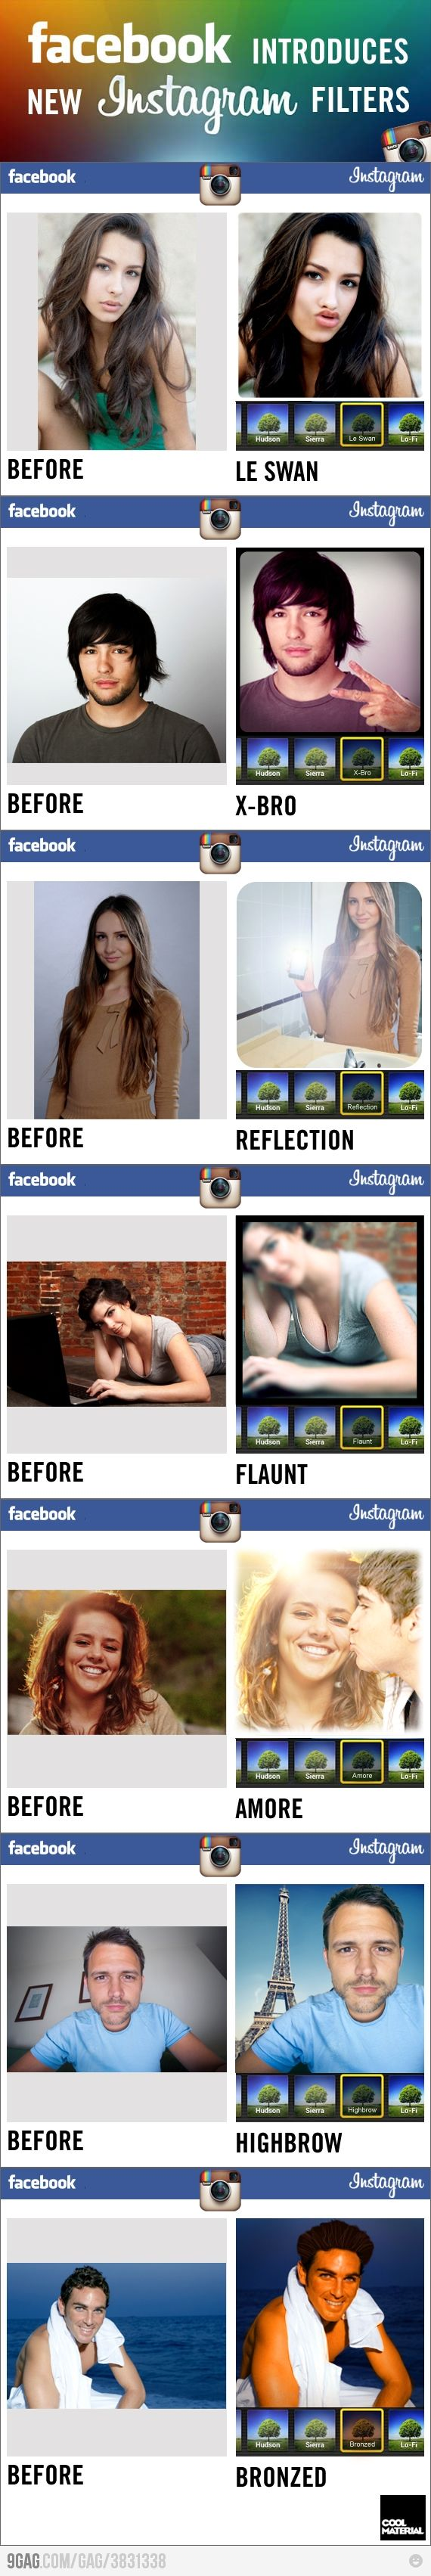 LOL -- #Facebook Introduces New #Instagram Filters #infographicFacebook Instagram, Laugh, Facebookinstagram, Stuff, Funny Memes Pictures, Social Media, Humor, Instagram Filters, Facebook Introducing